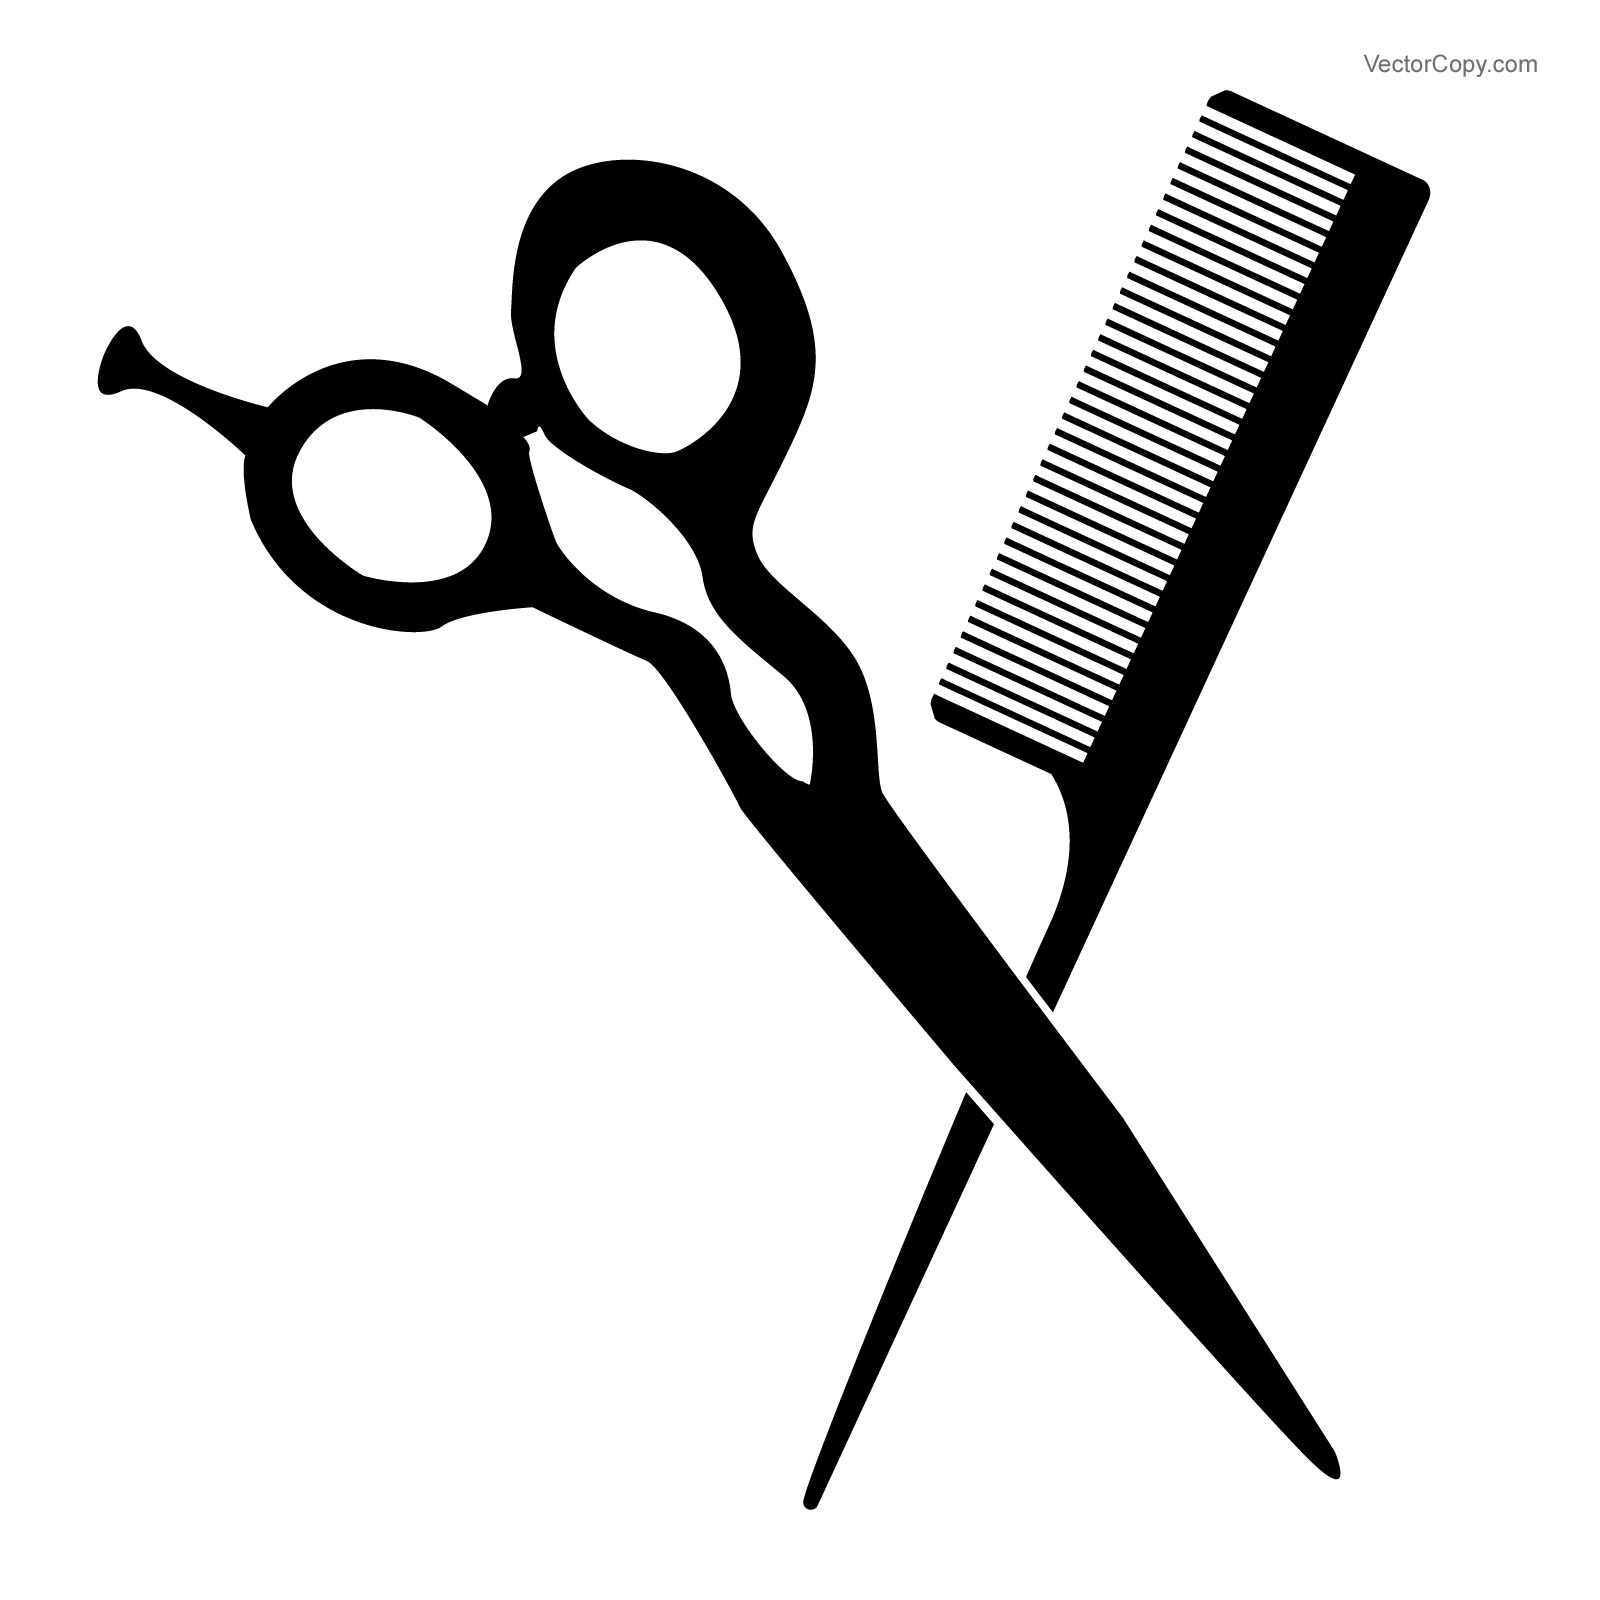 1600x1600 Scissors Clipart Black And White Free Images 3 3